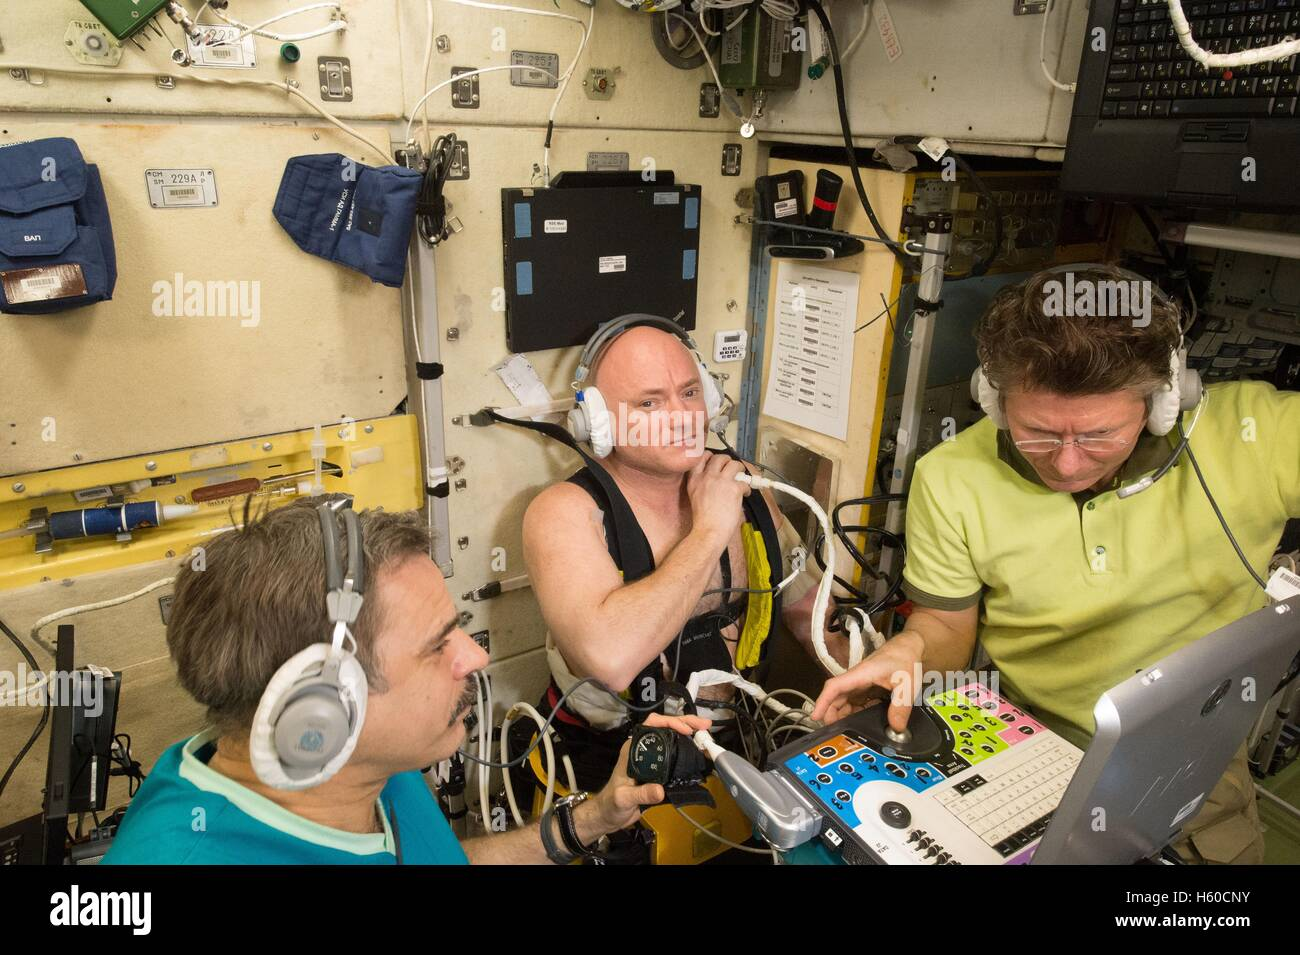 NASA International Space Station Expedition 44 mission prime crew astronaut Scott Kelly (middle) uses a Lower Body - Stock Image